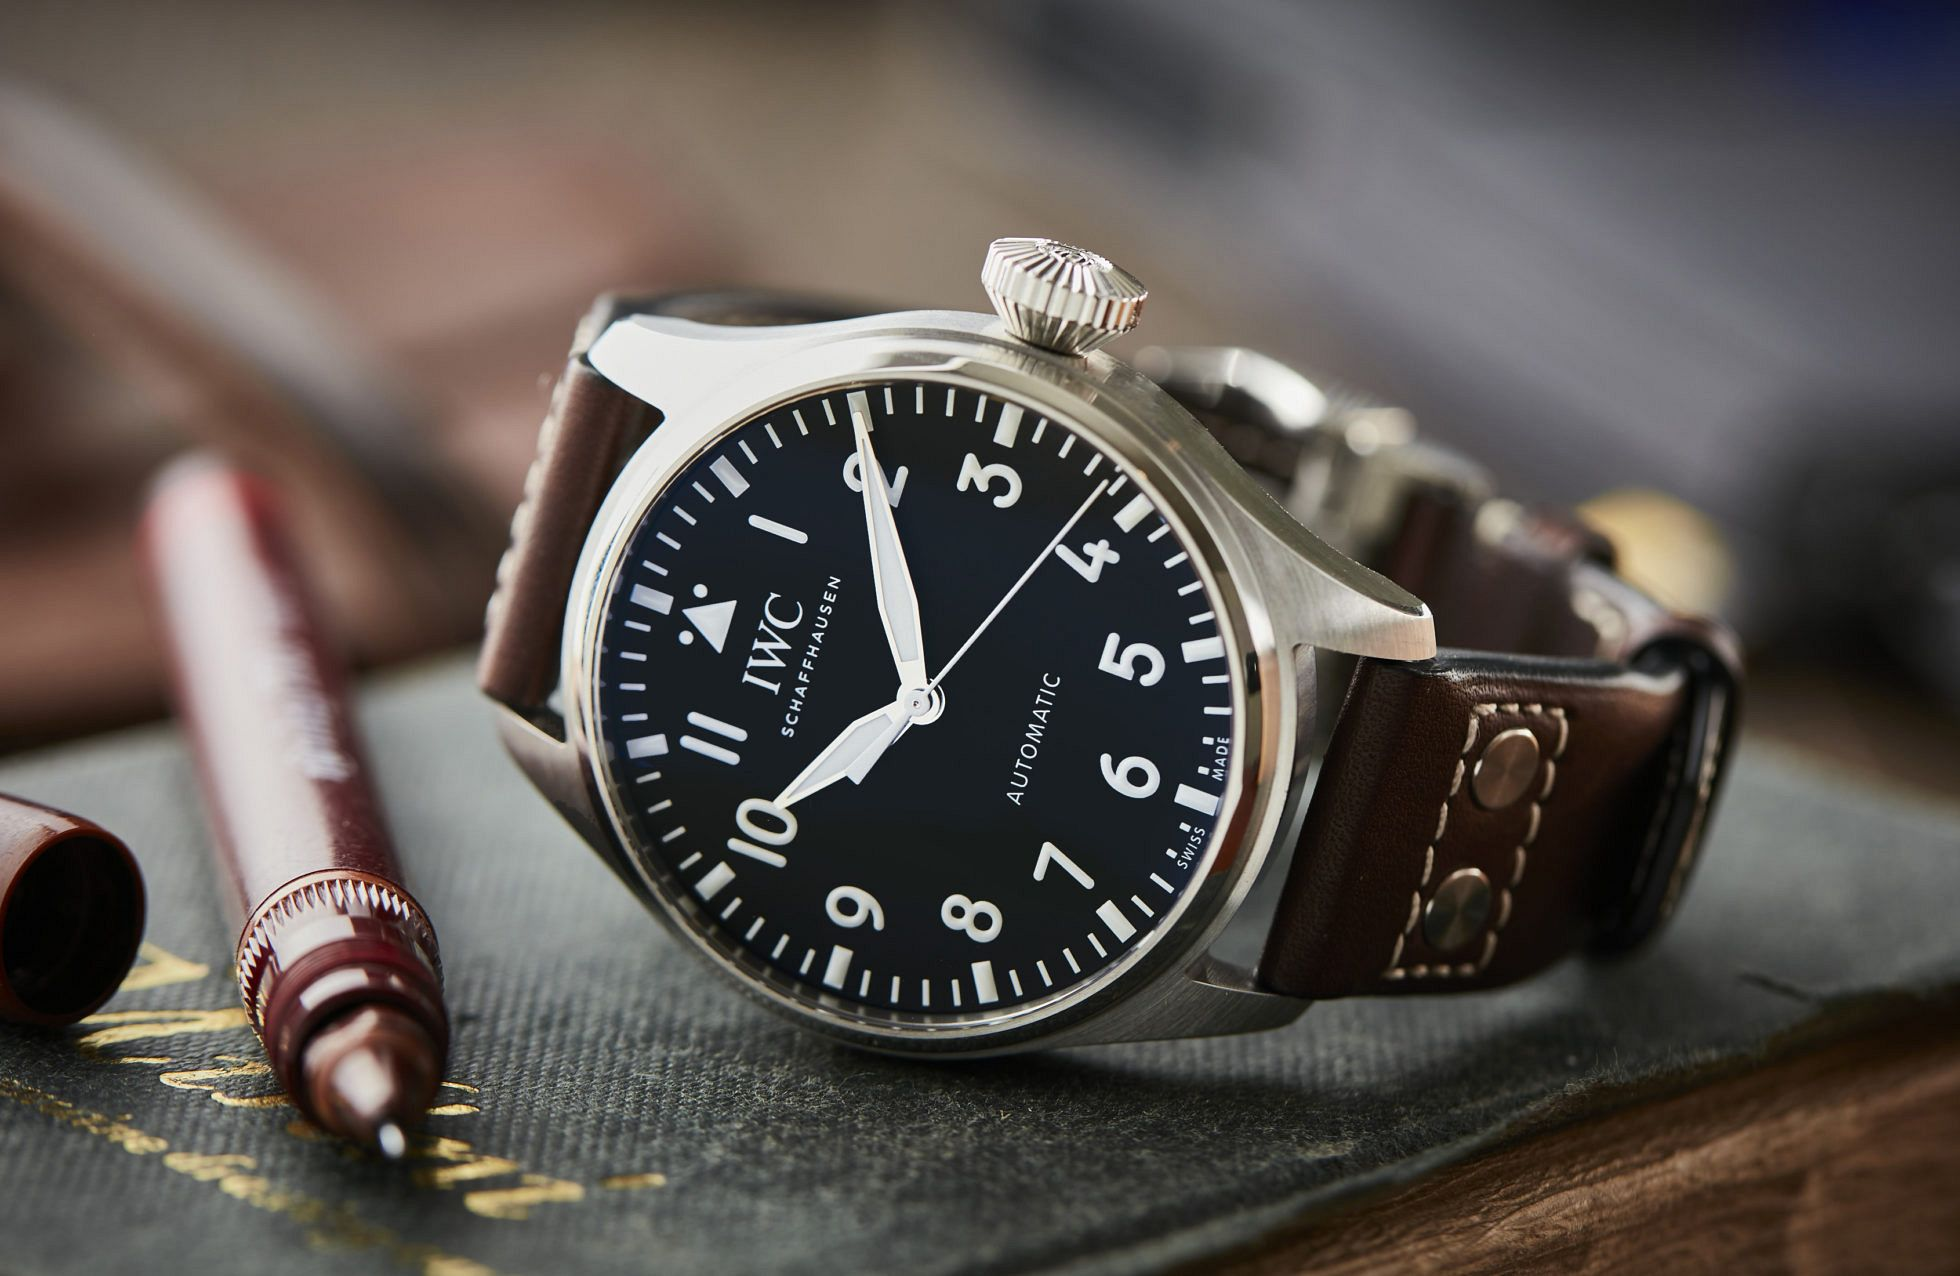 The IWC Pilot's collection offers greater choice than ever before